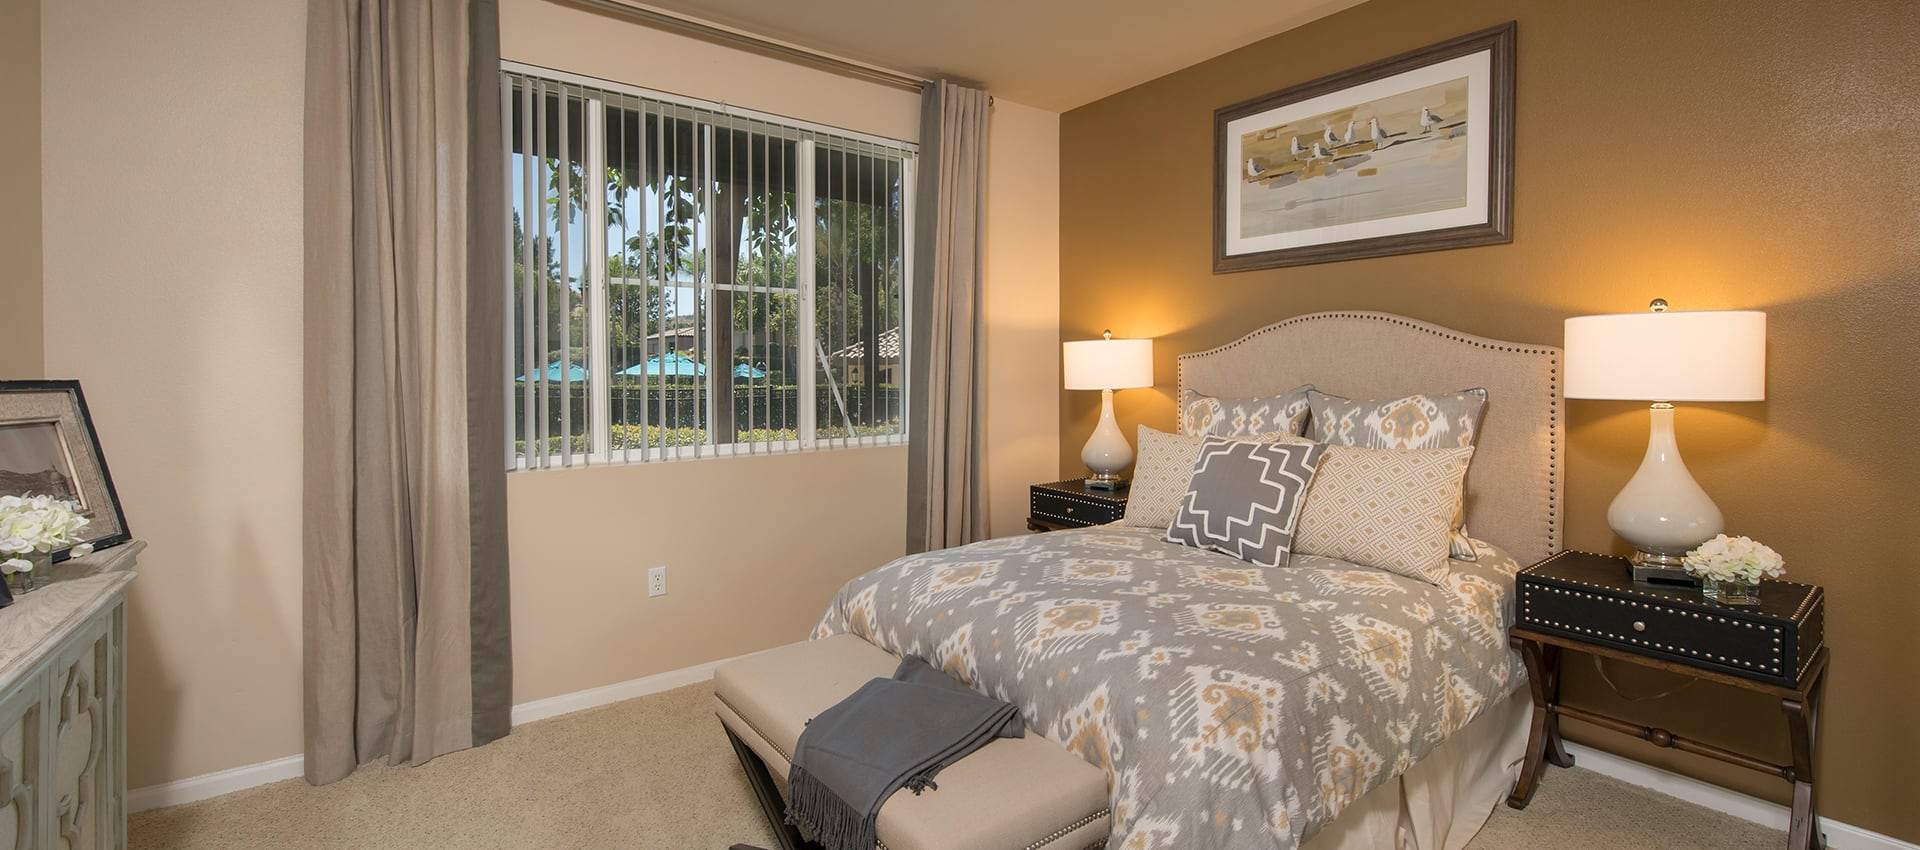 Model bedroom with unique accent lighting at Esplanade Apartment Homes in Riverside, California